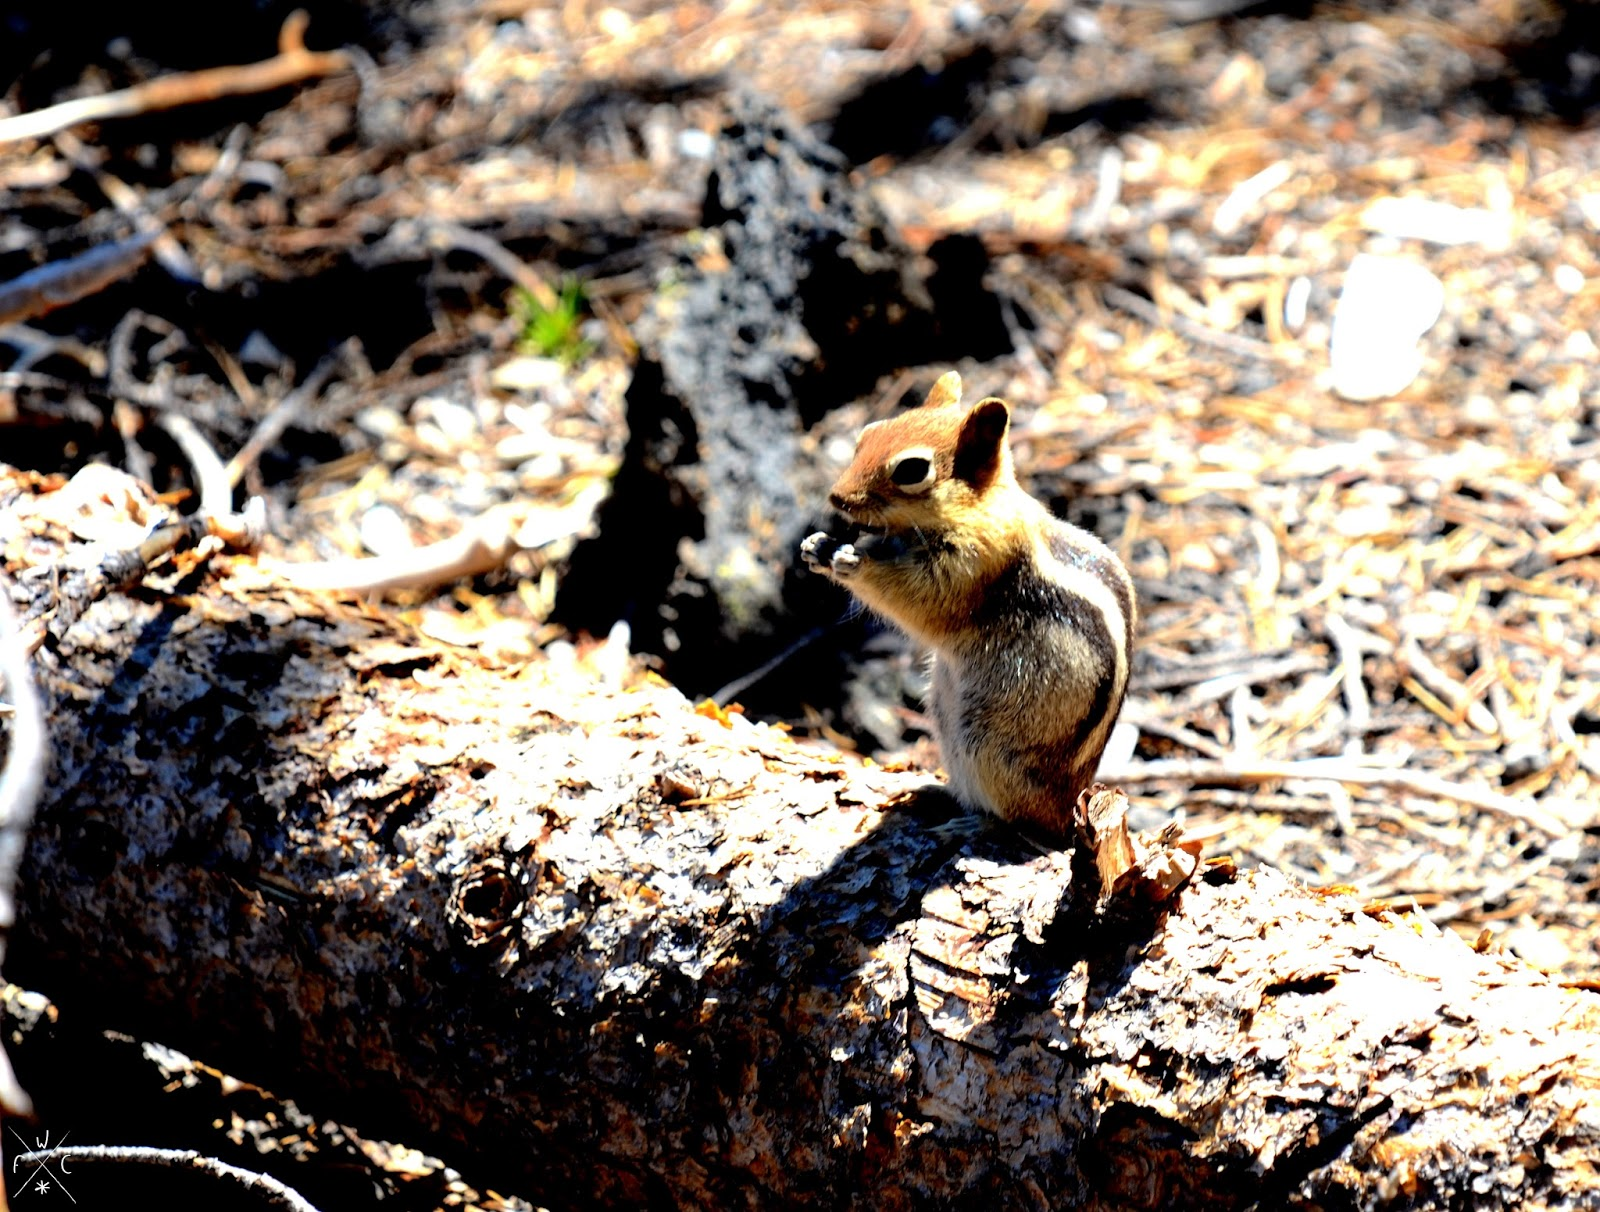 Chipmunk, Deschutes National Forest, Oregon, USA